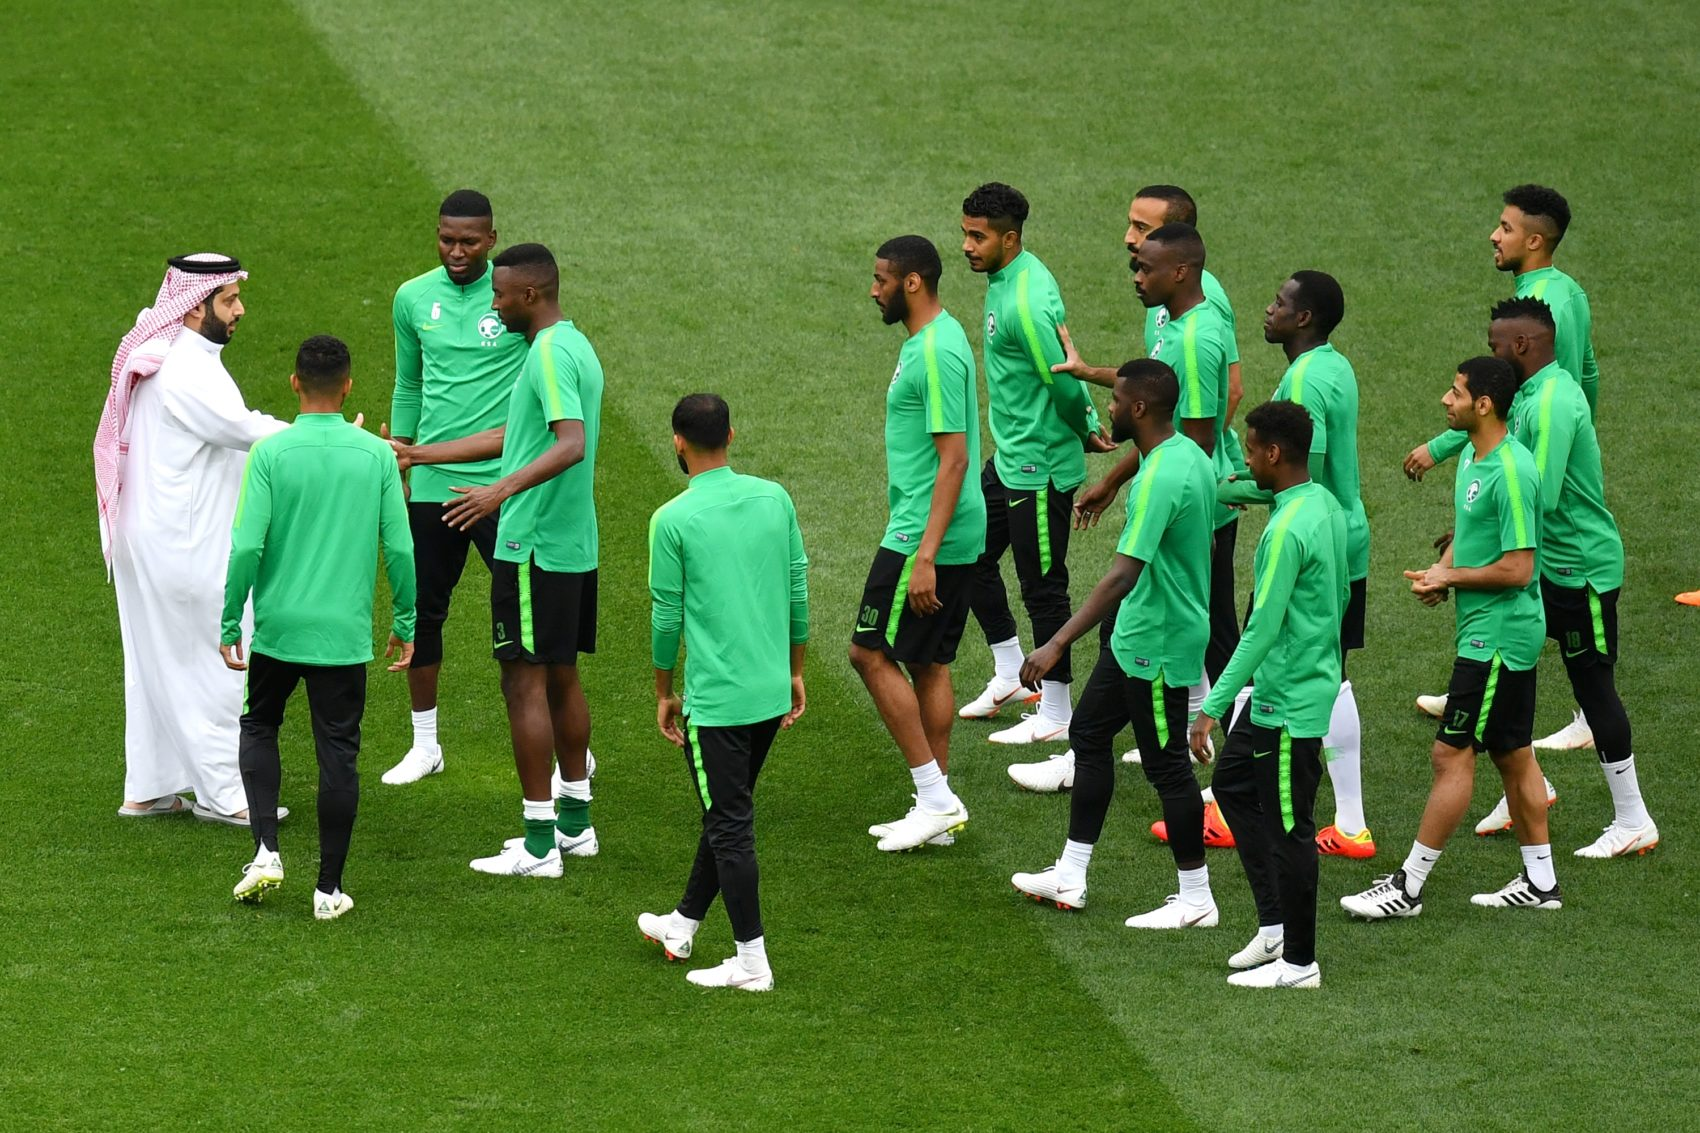 Saudi Arabia sports minister Turki al-Sheikh greets his nation's players ahead of the World Cup's opening game against hosts Russia